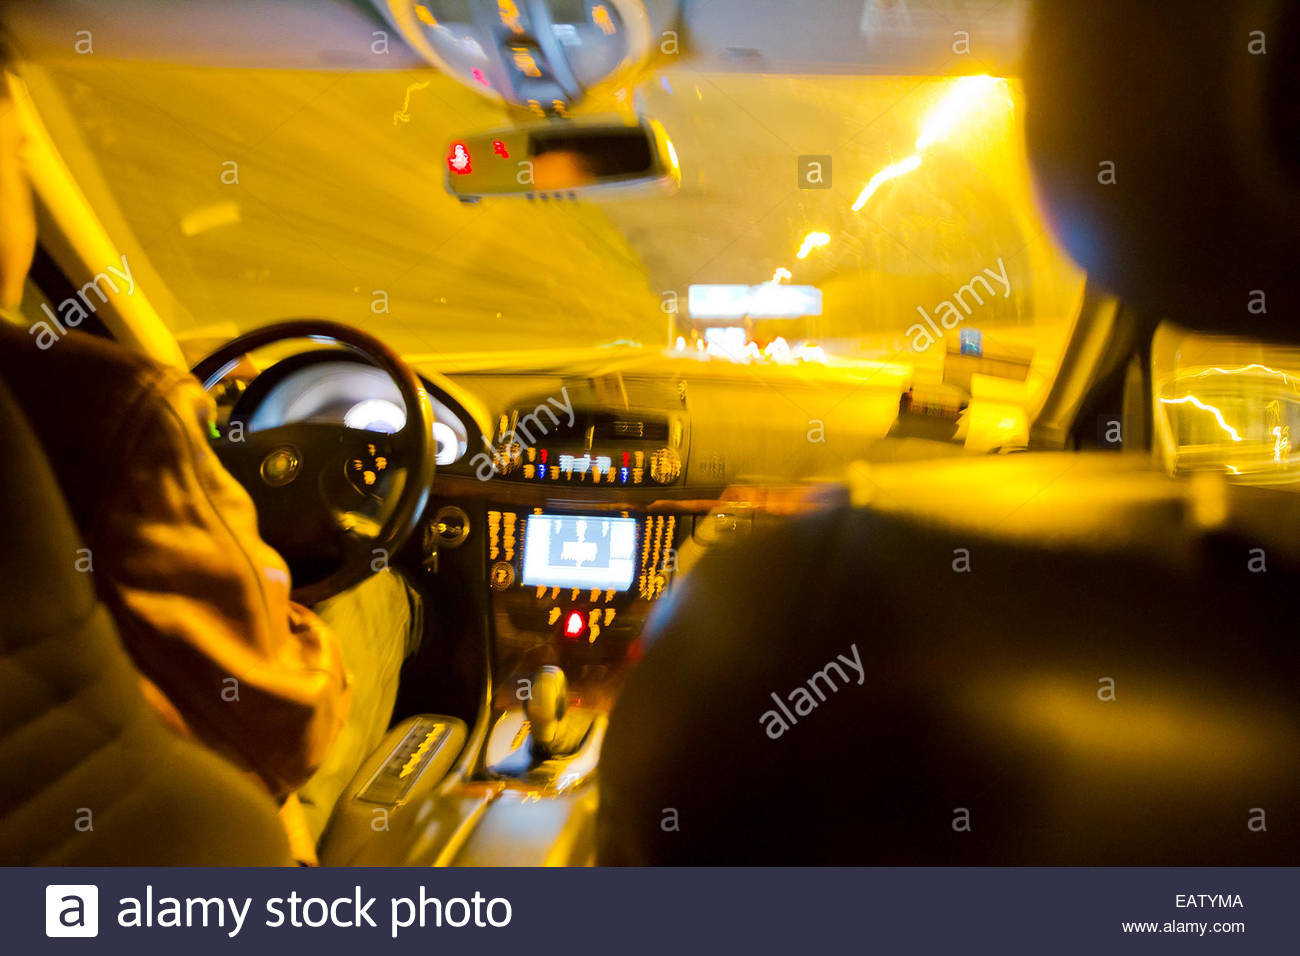 Long exposure from the backseat of a taxi cab driving at night. - Stock Image